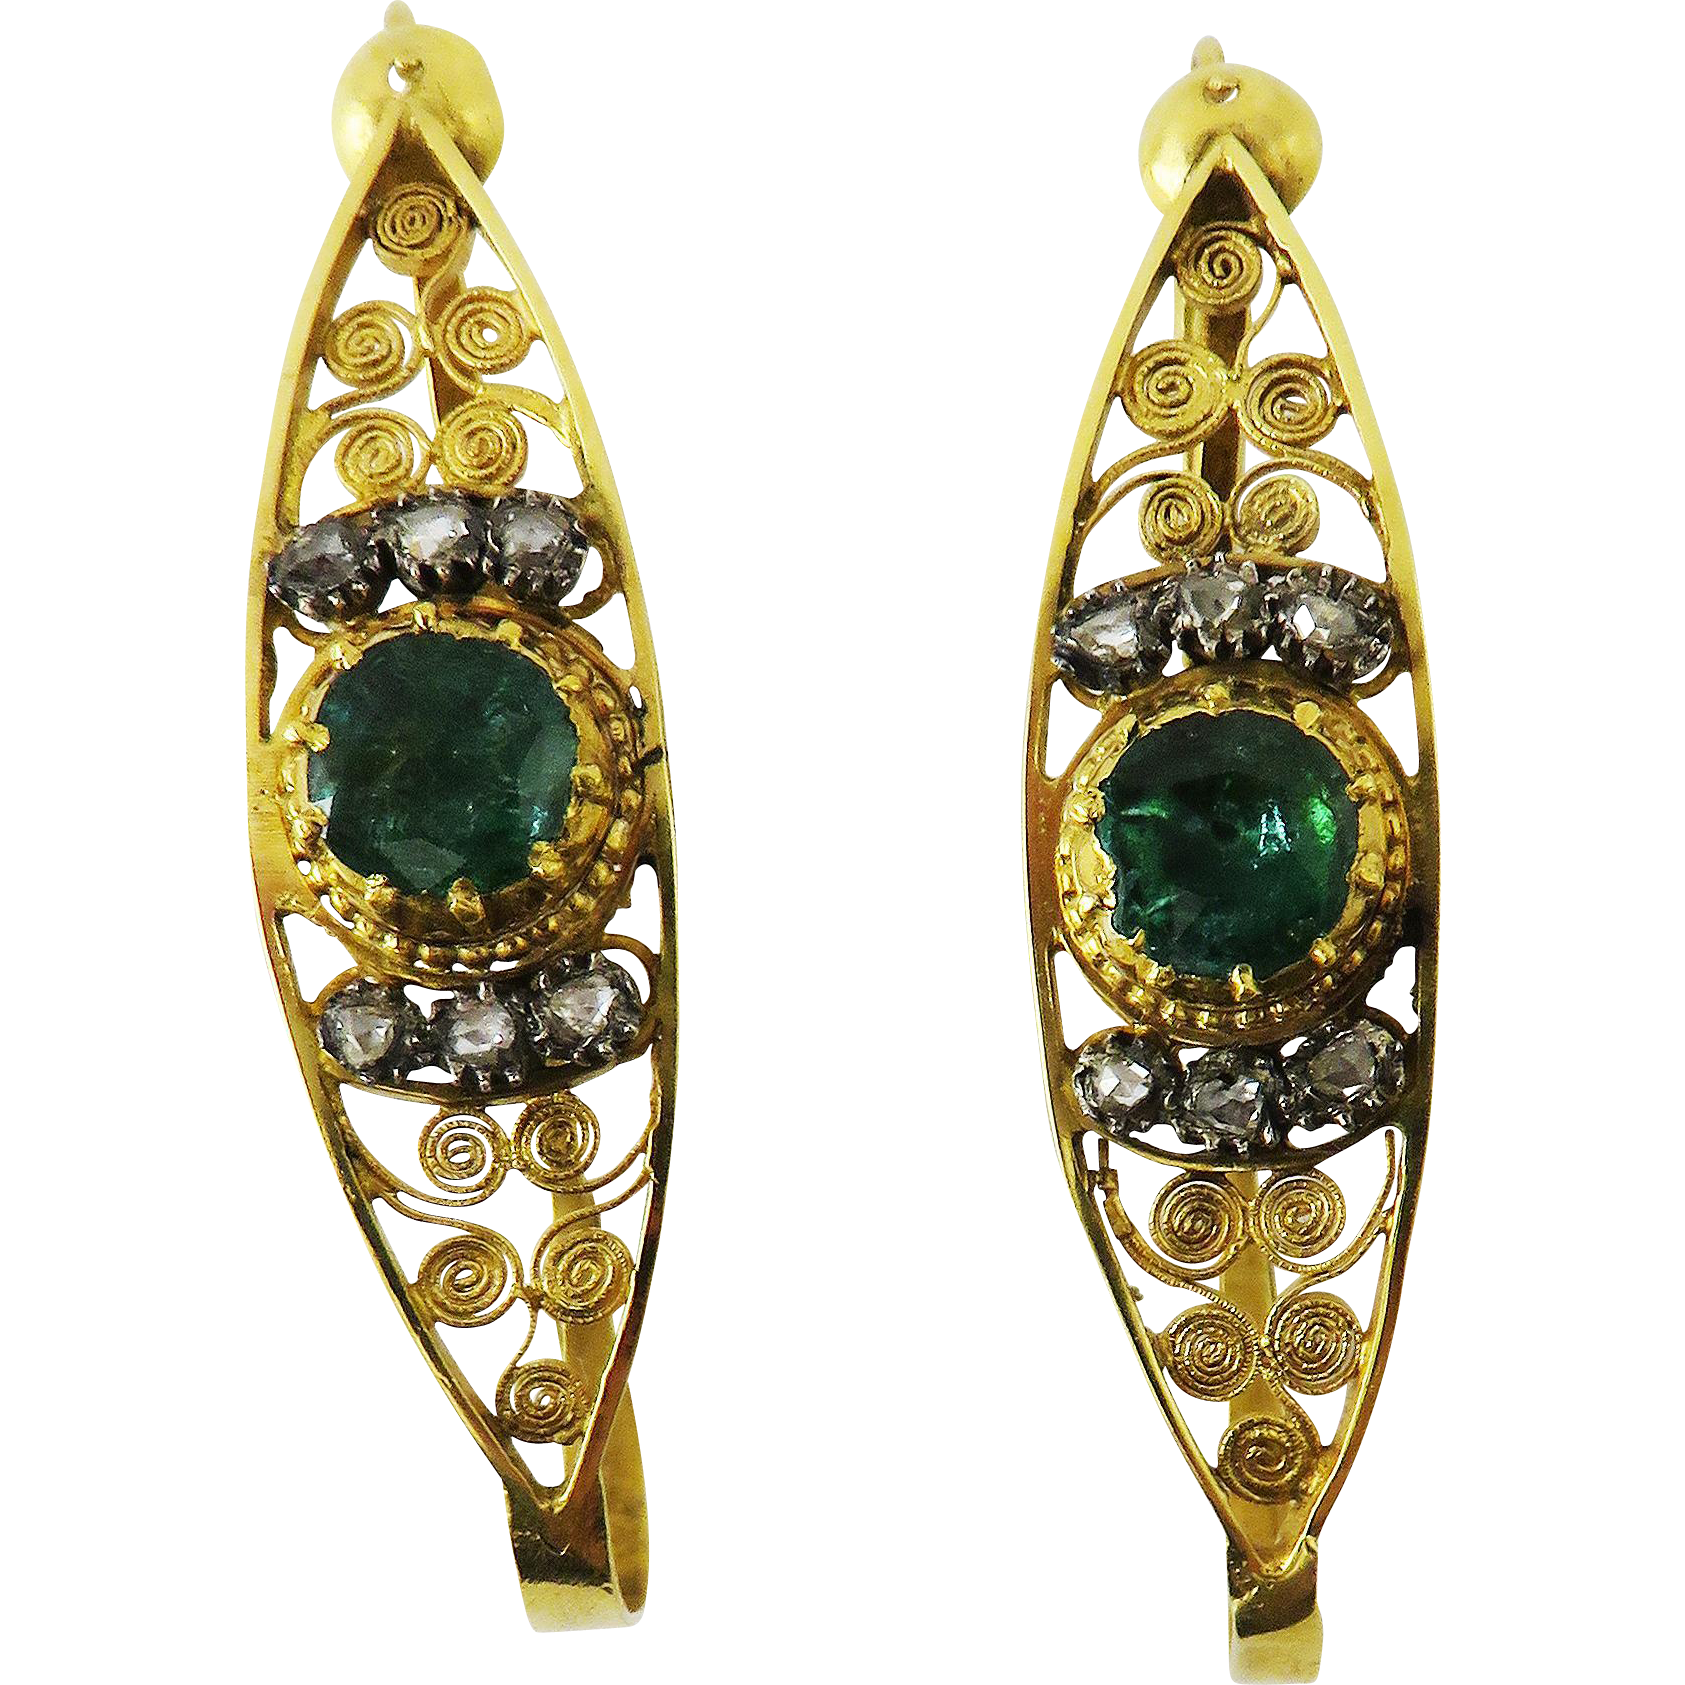 MASTERPIECE 2.36 Ct. TW Spanish Muzo Mine Emerald/Diamond/18k Poissard Earrings, c.1800!